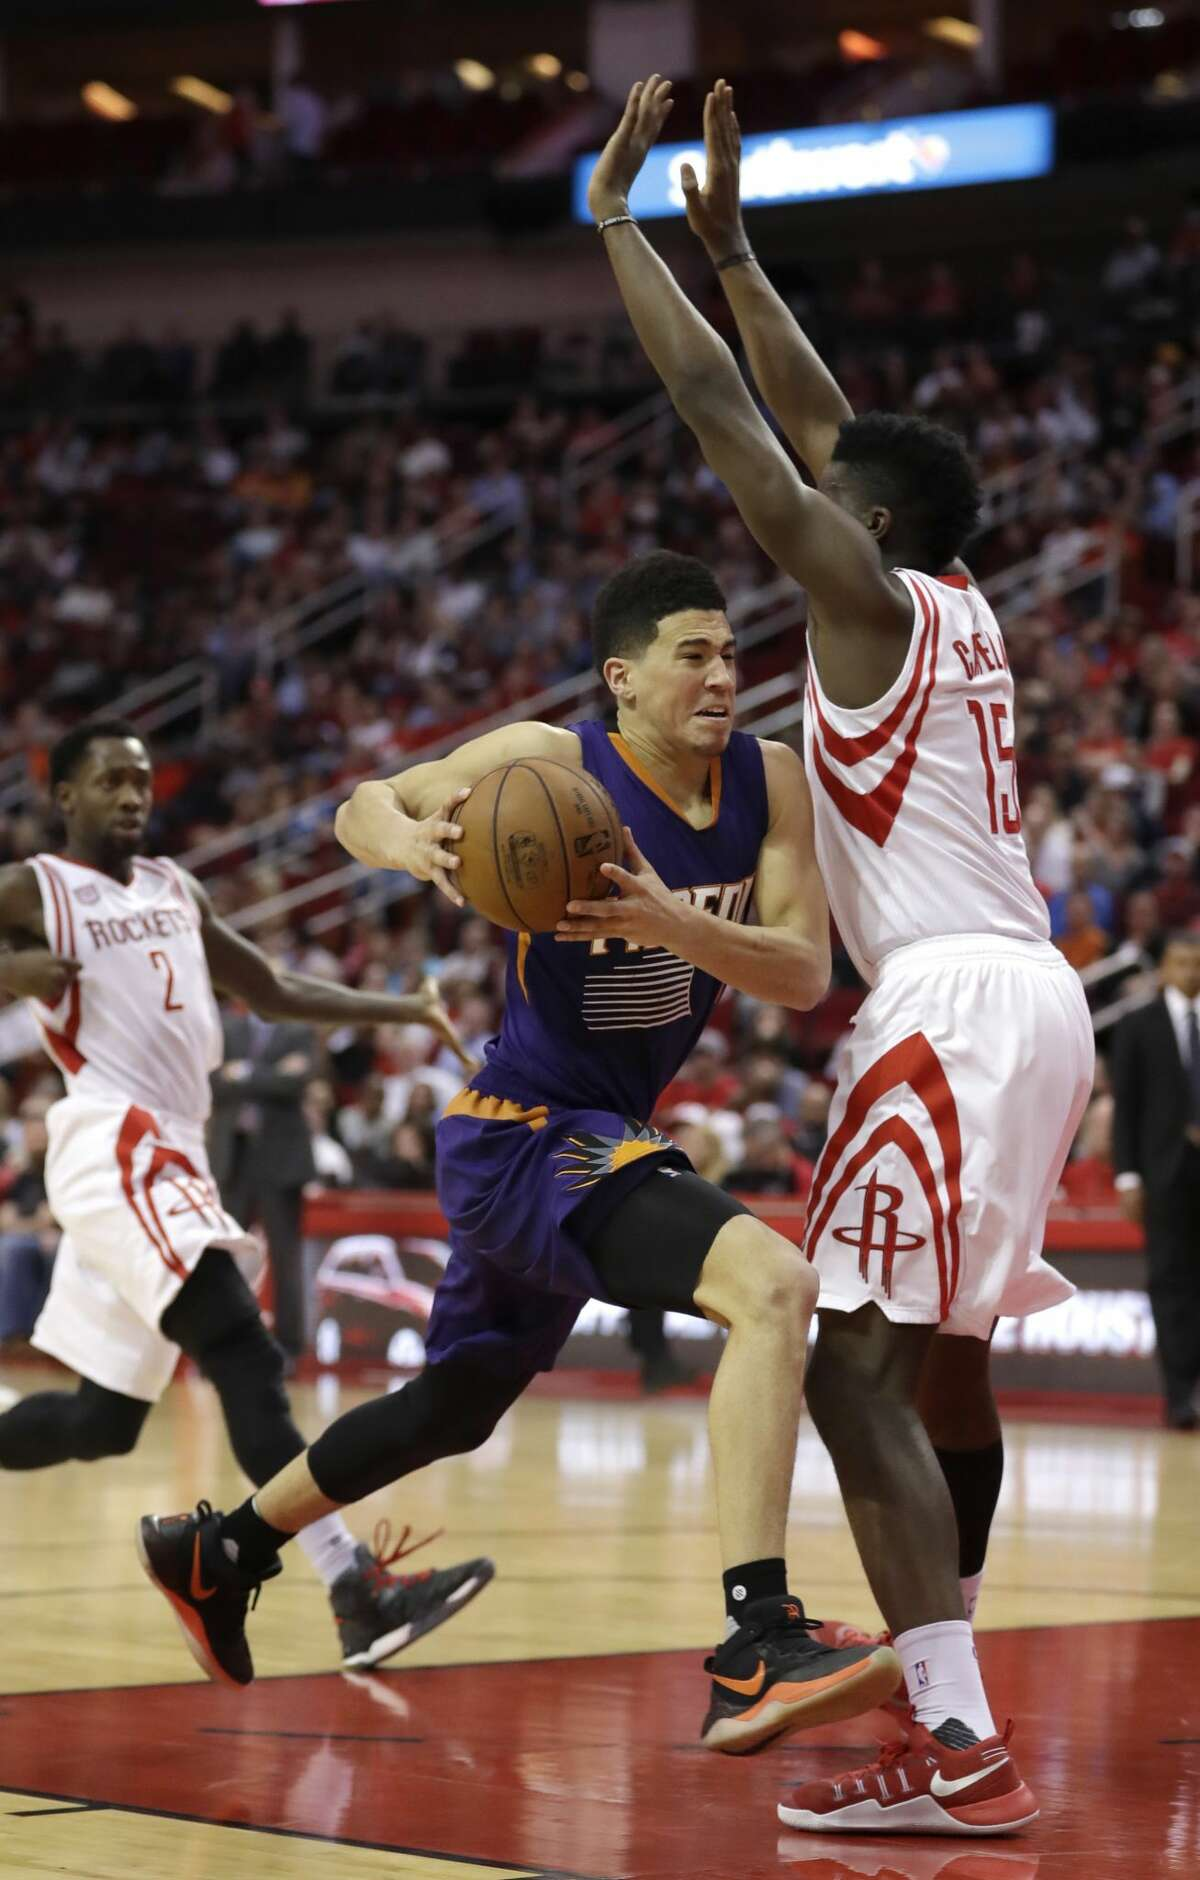 Phoenix Suns' Devin Booker (1) drives toward the basket as Houston Rockets' Clint Capela (15) defends during the second half of an NBA basketball game Saturday, Feb. 11, 2017, in Houston. The Rockets 133-102. (AP Photo/David J. Phillip)